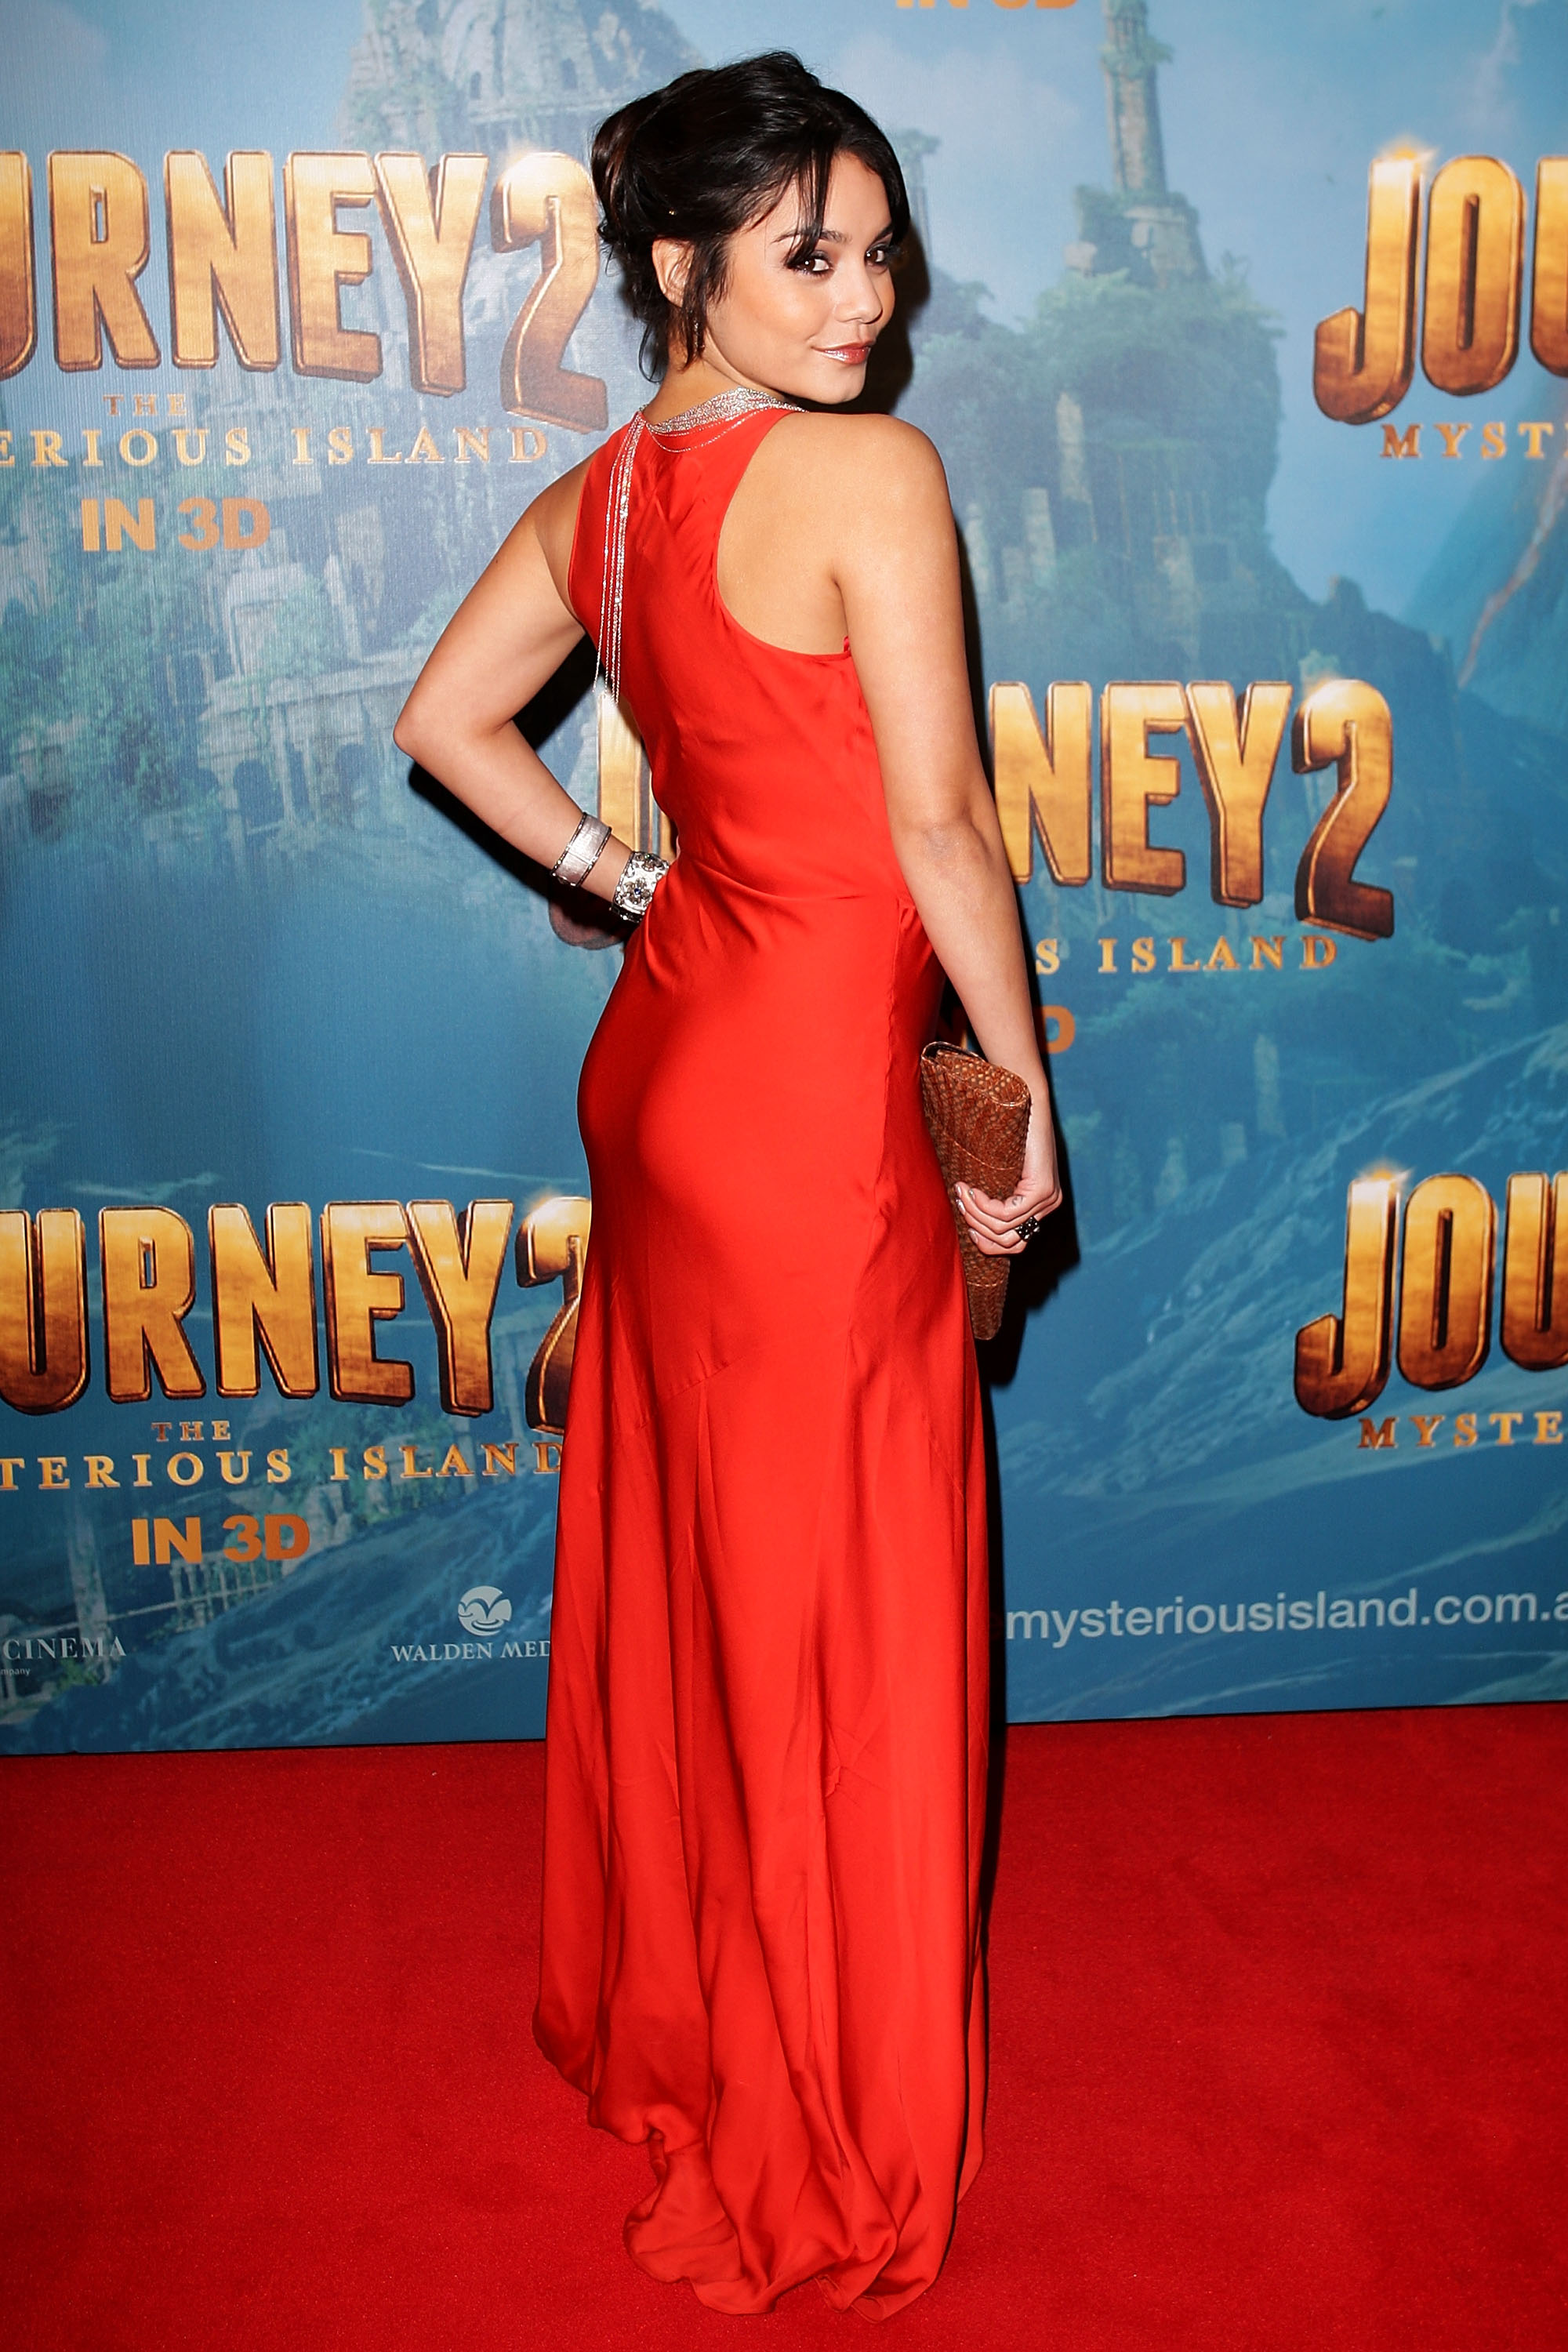 Vanessa Hudgens Cleavy In Red Dress At Journey 2 Mysterious Island